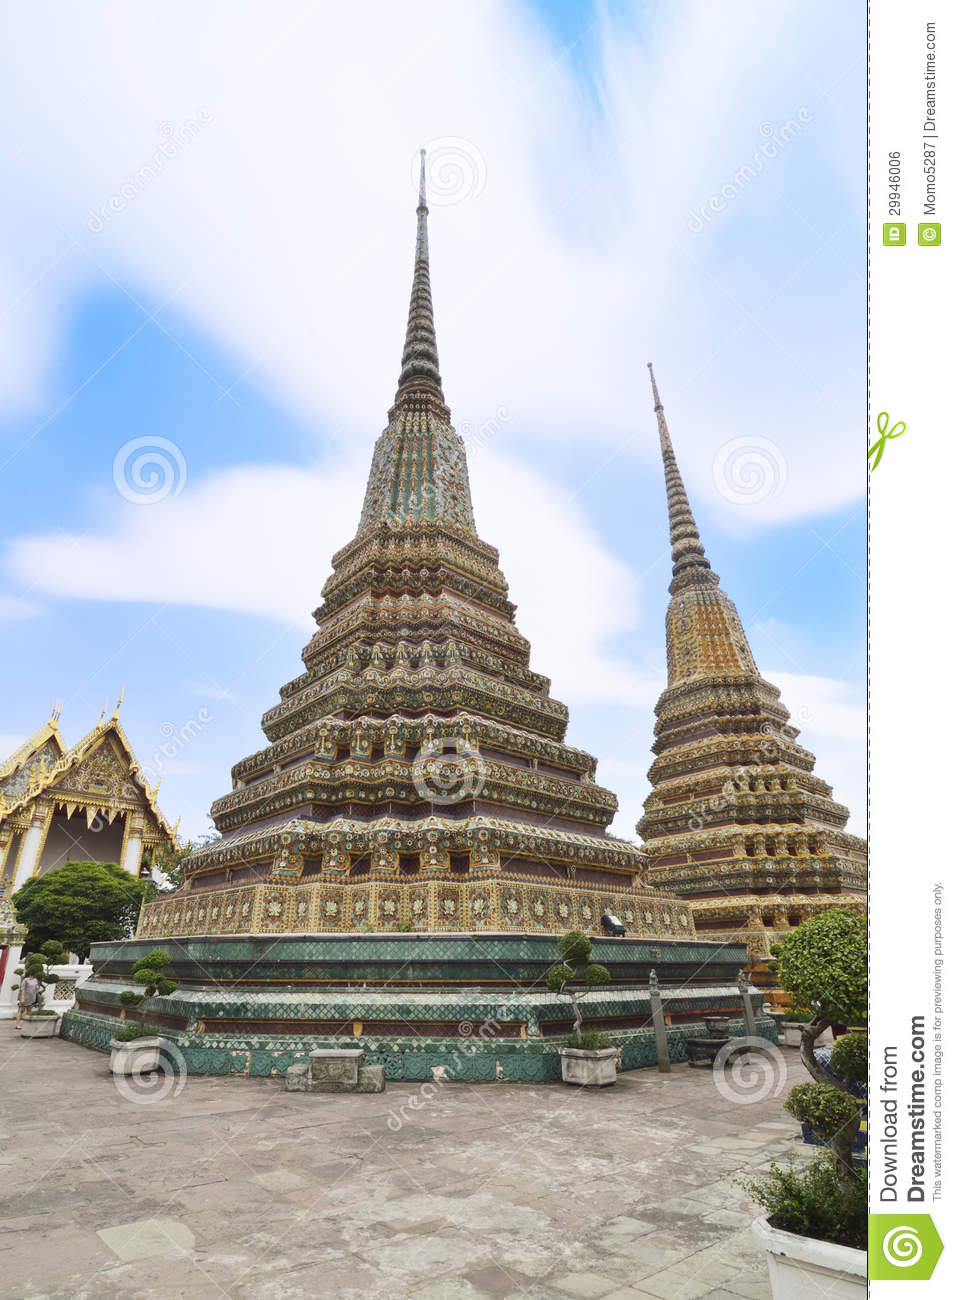 Wat pho royalty free stock image image 29946006 for Wat architecture